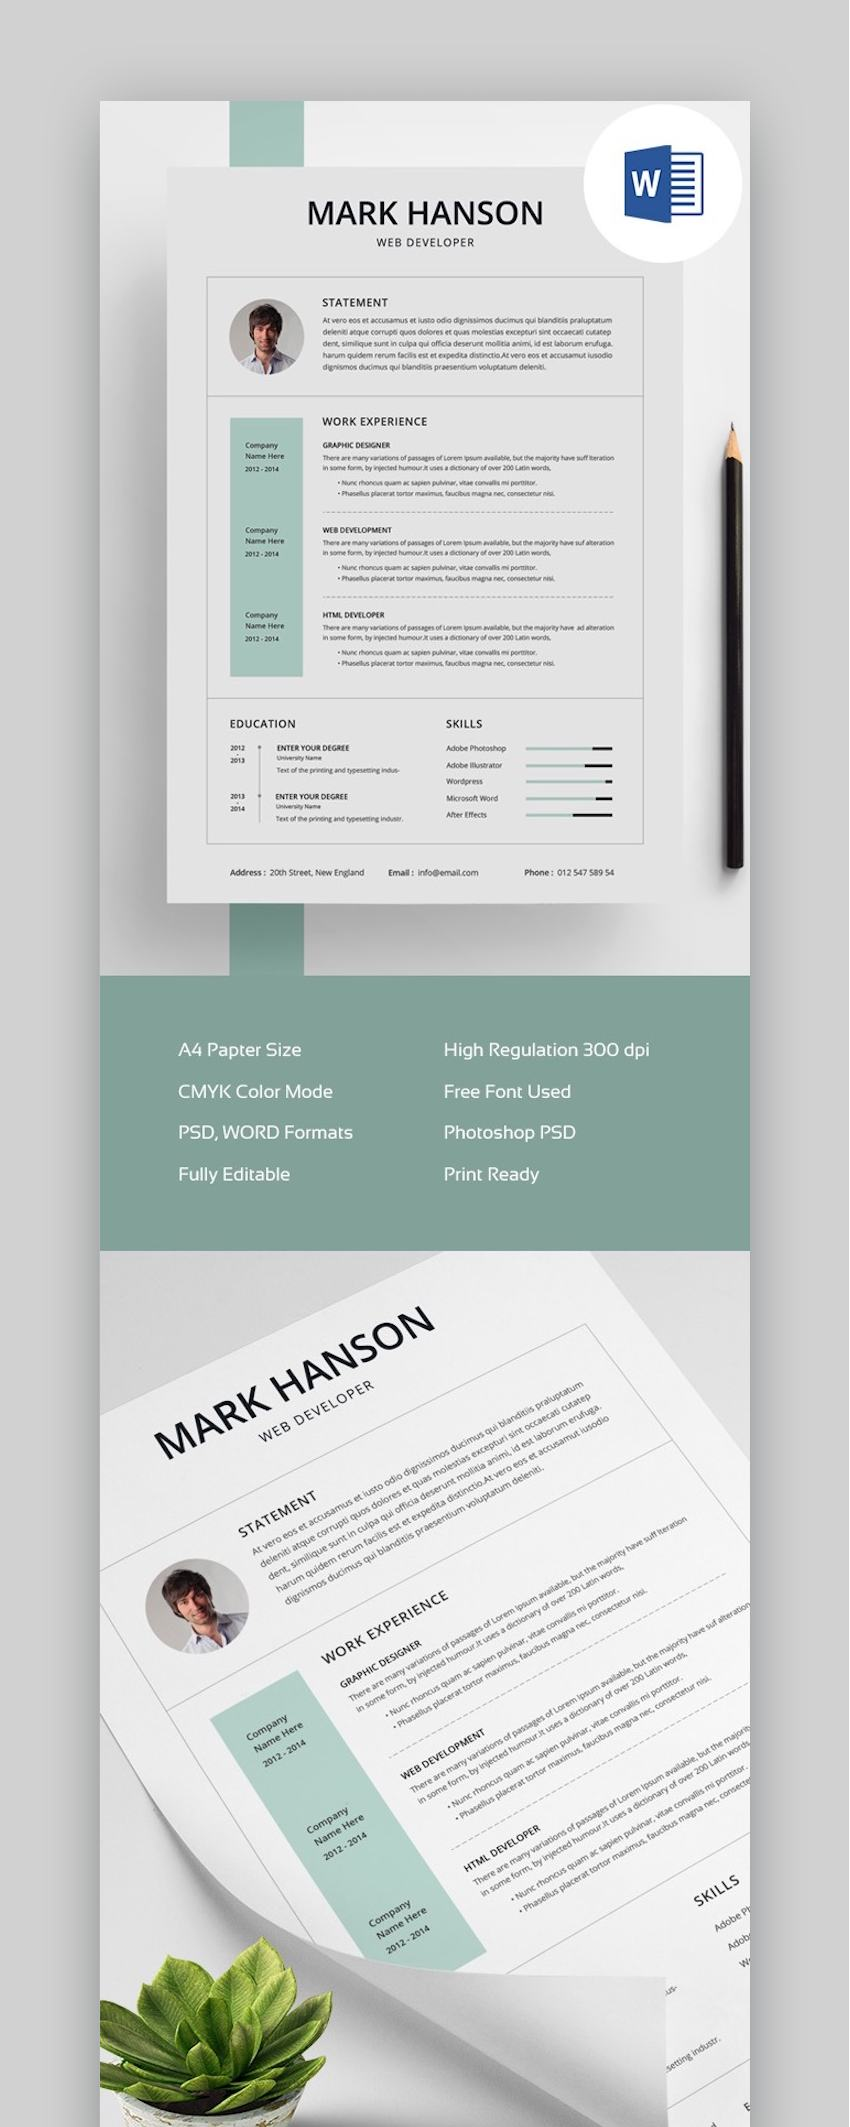 free creative resume templates word downloads for env clean template final red bull cfo Resume Free Creative Resume Download